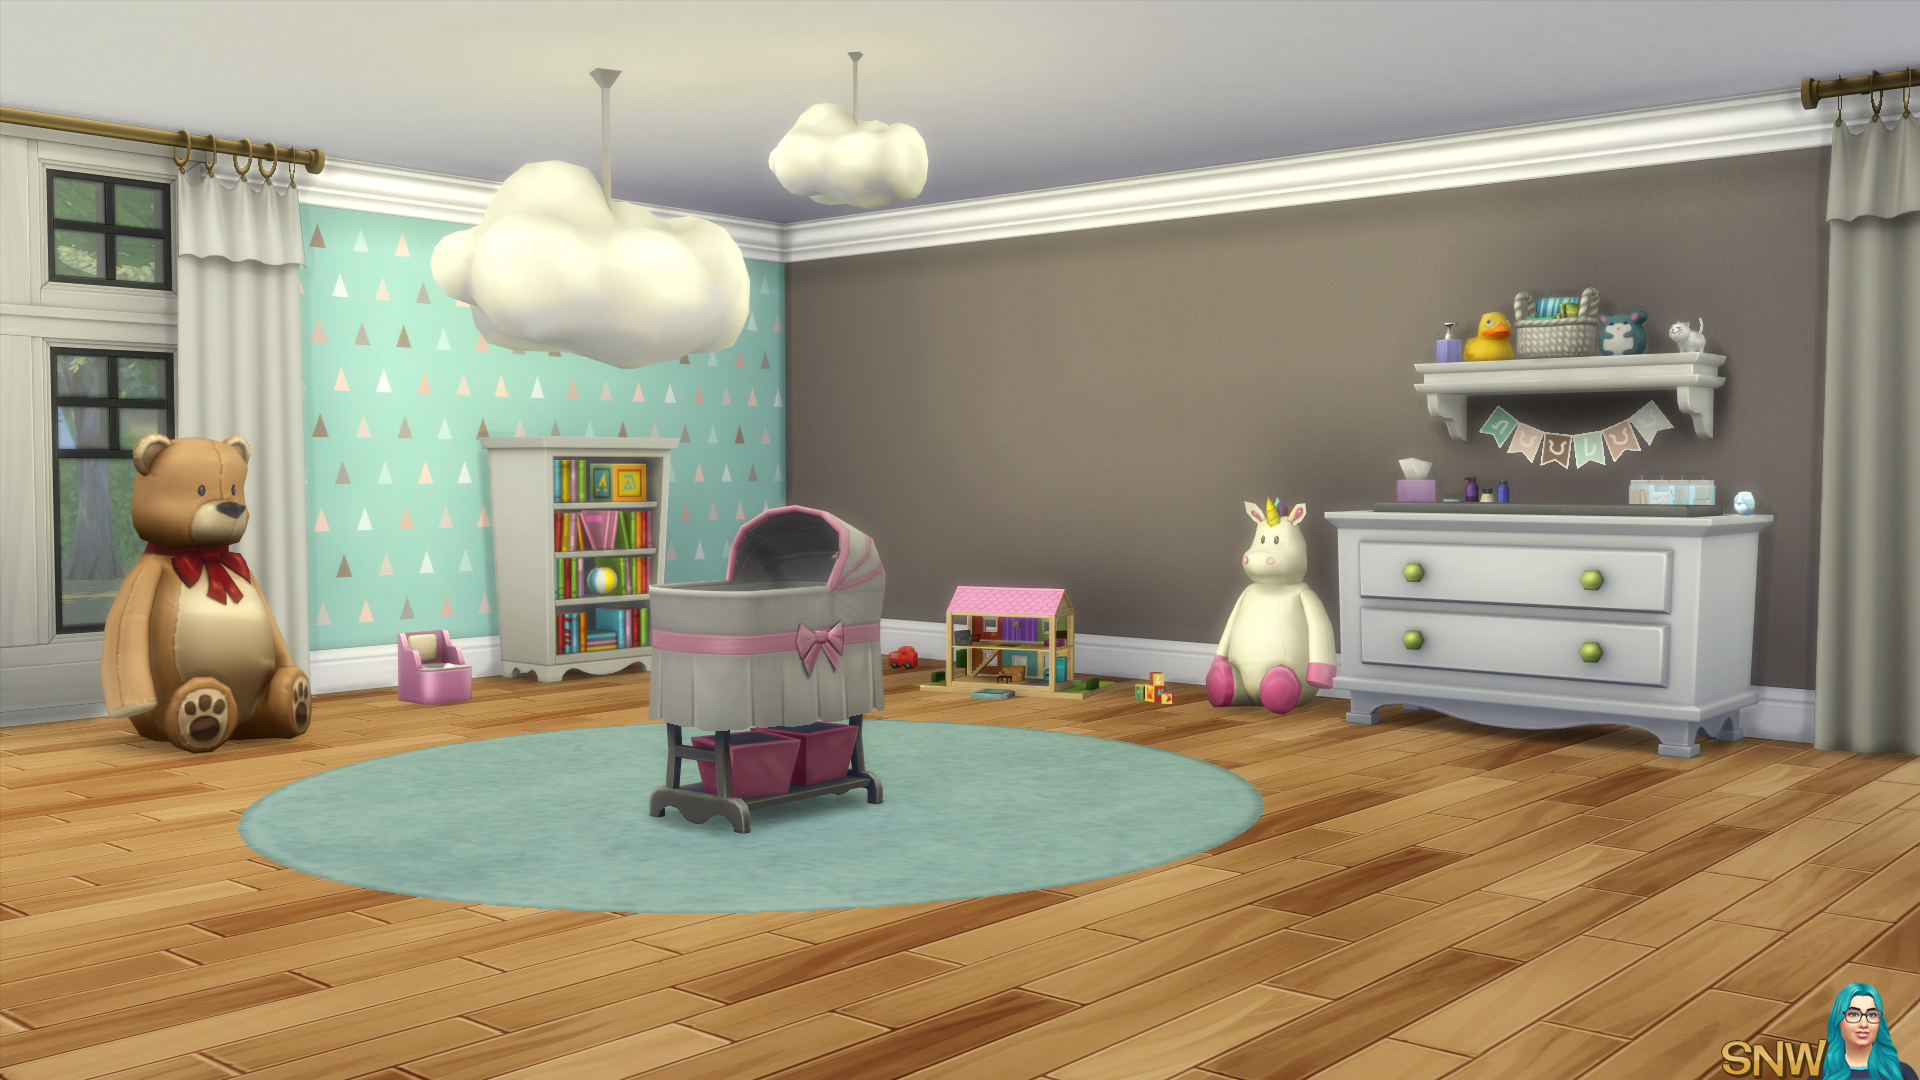 Nursery Walls Set #6 - Basics + Triangles